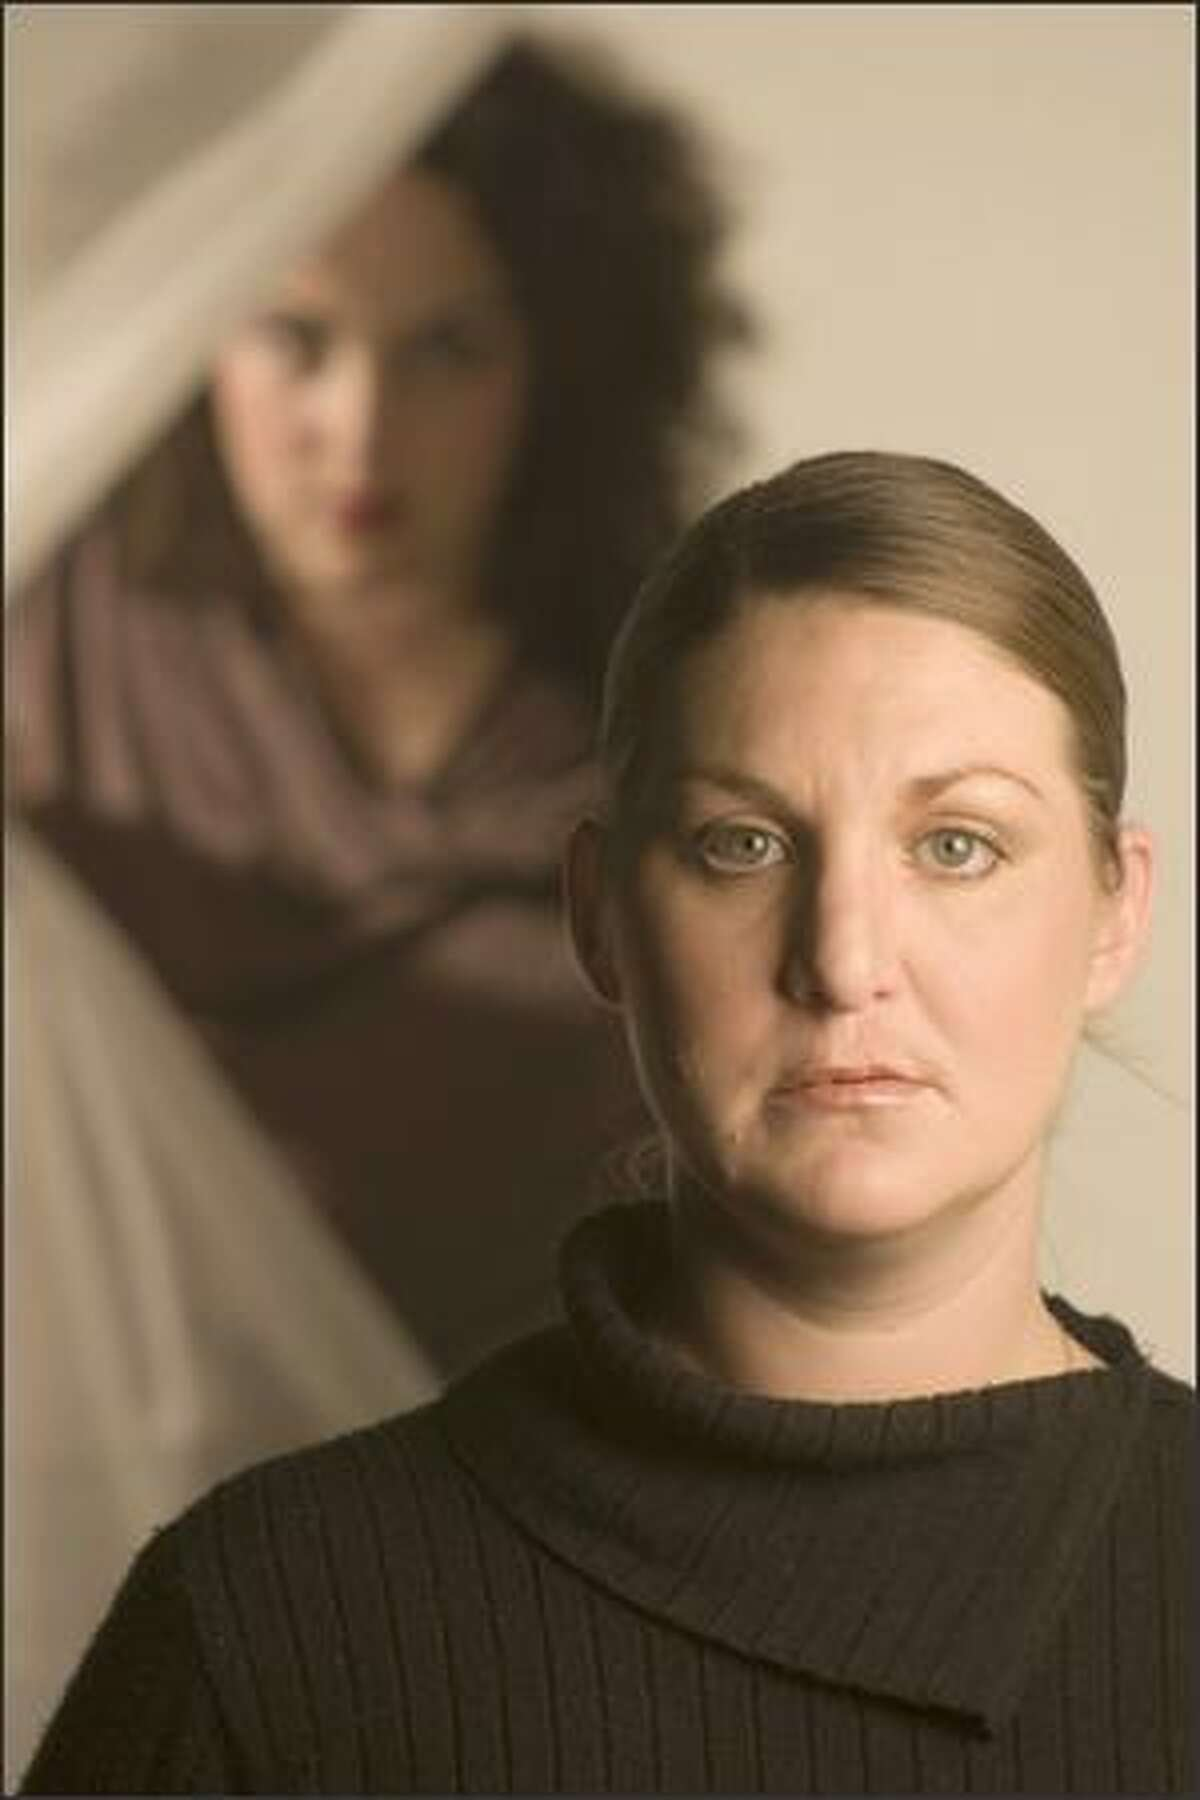 Erica Chiles-Curnutte plays Hamlet and Lisa Hopp is Claudius in the Animus Theatre Project's